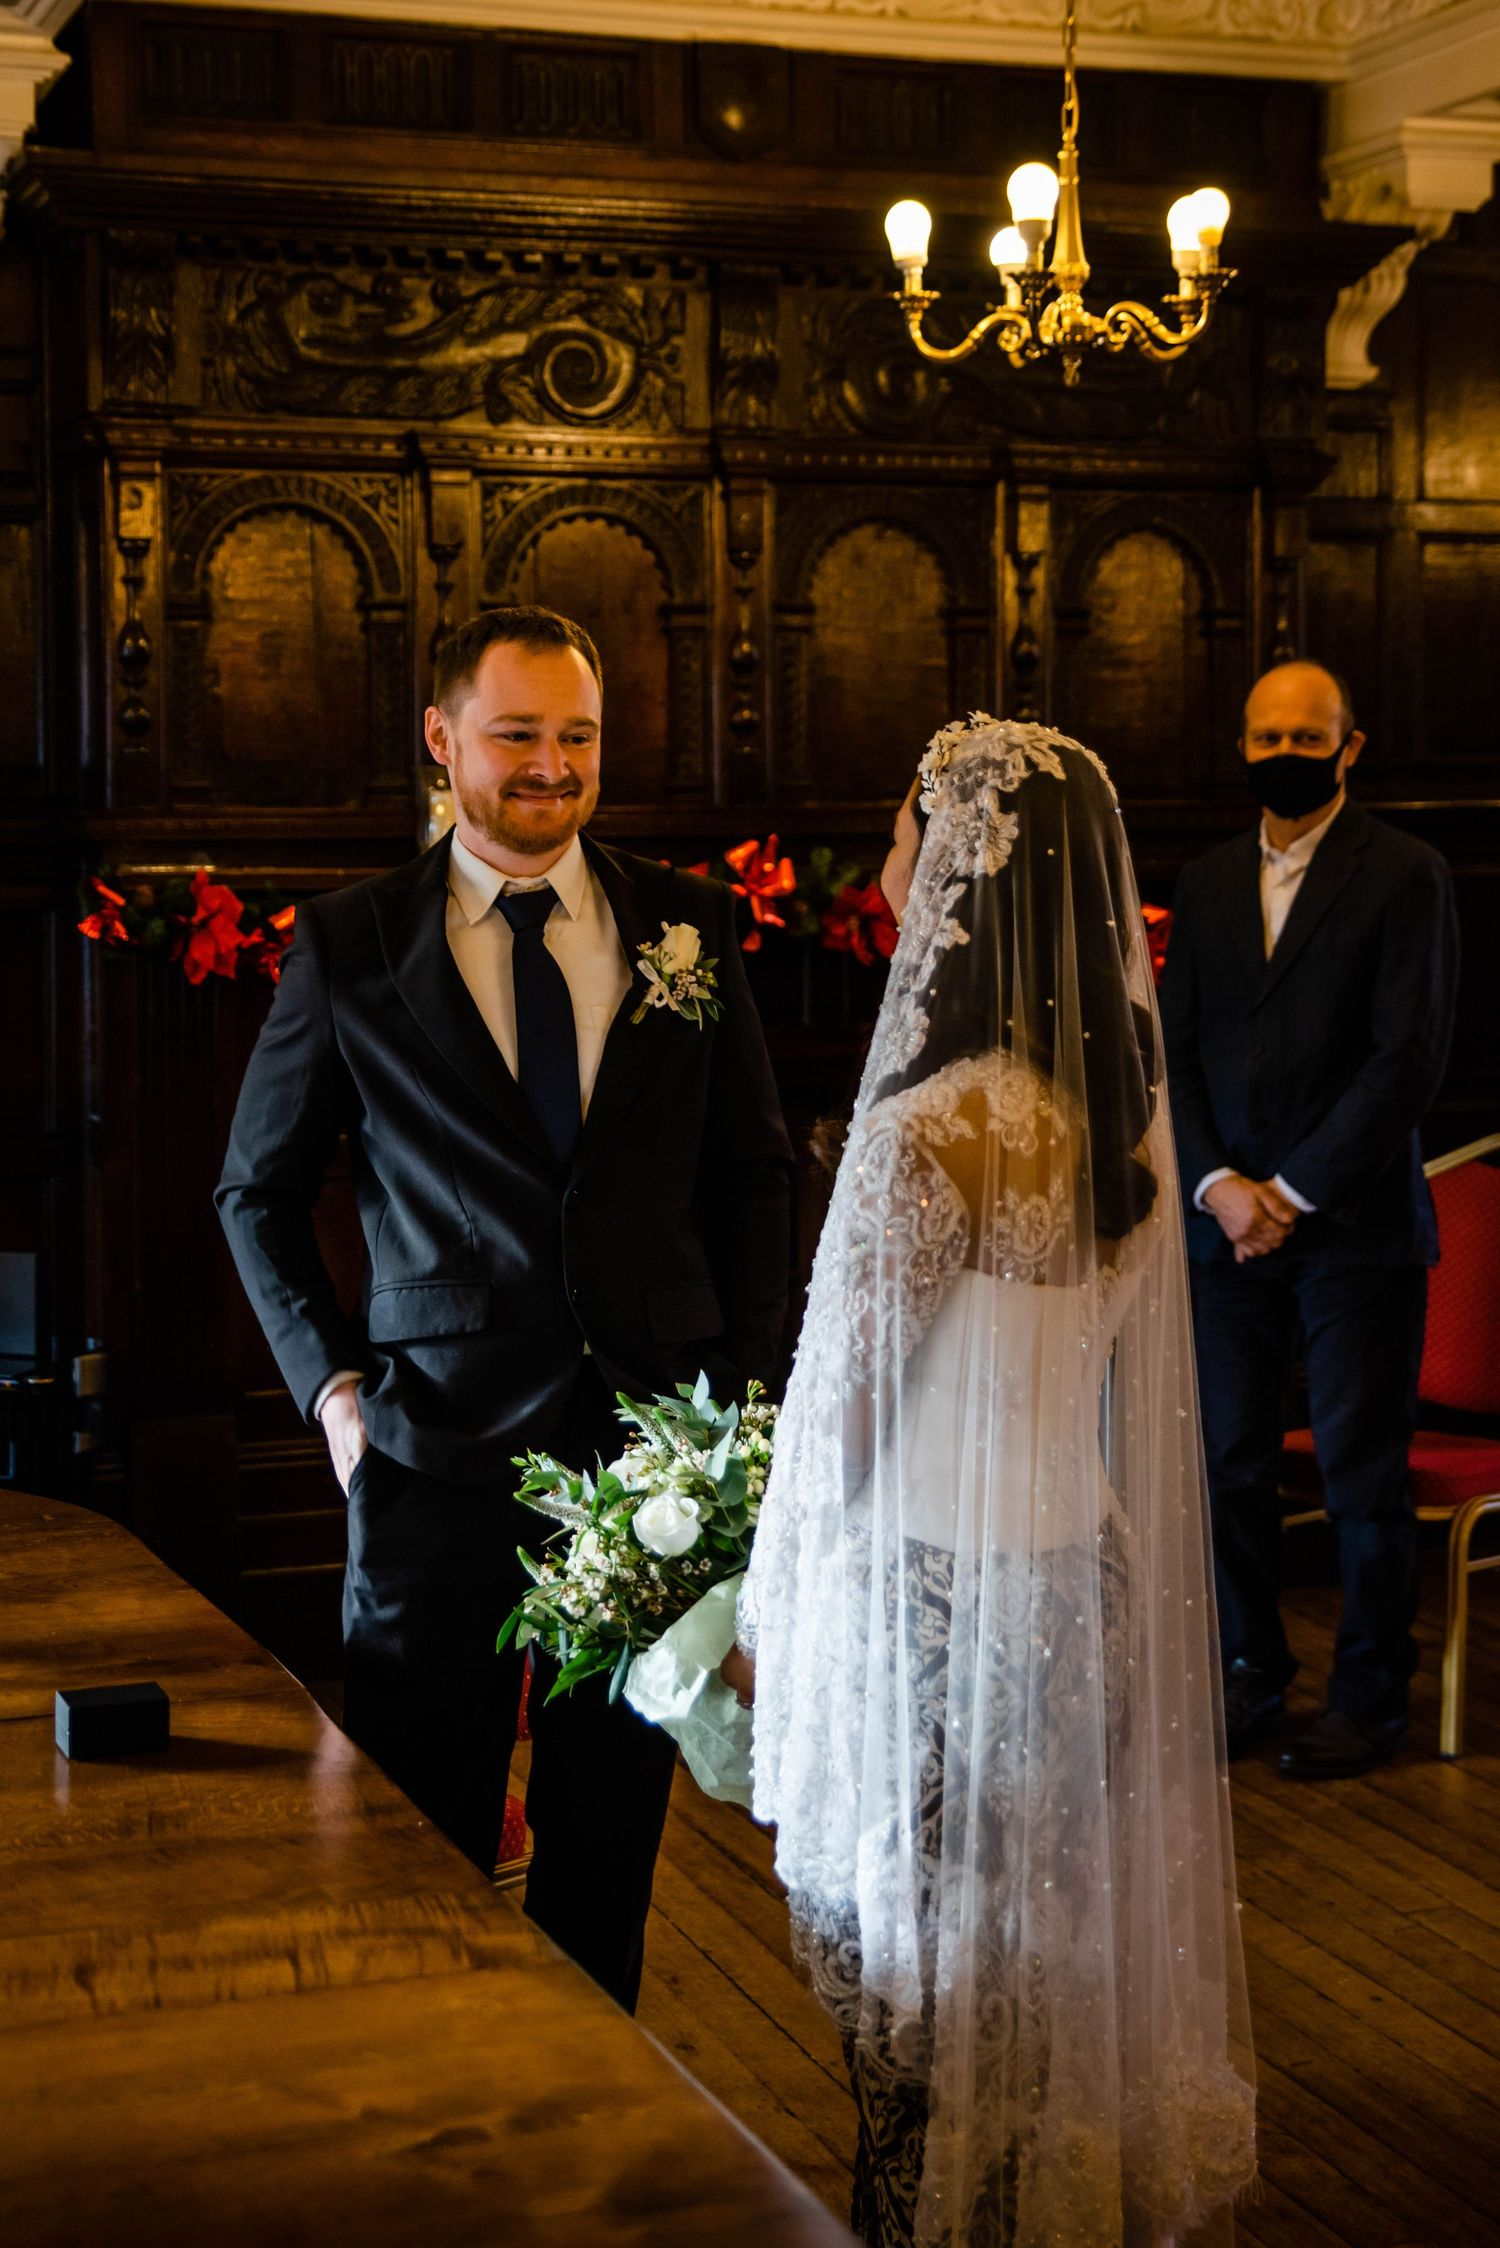 Zara Davis Wedding Photography at Hereford Town Hall  in Herefordshire groom first look